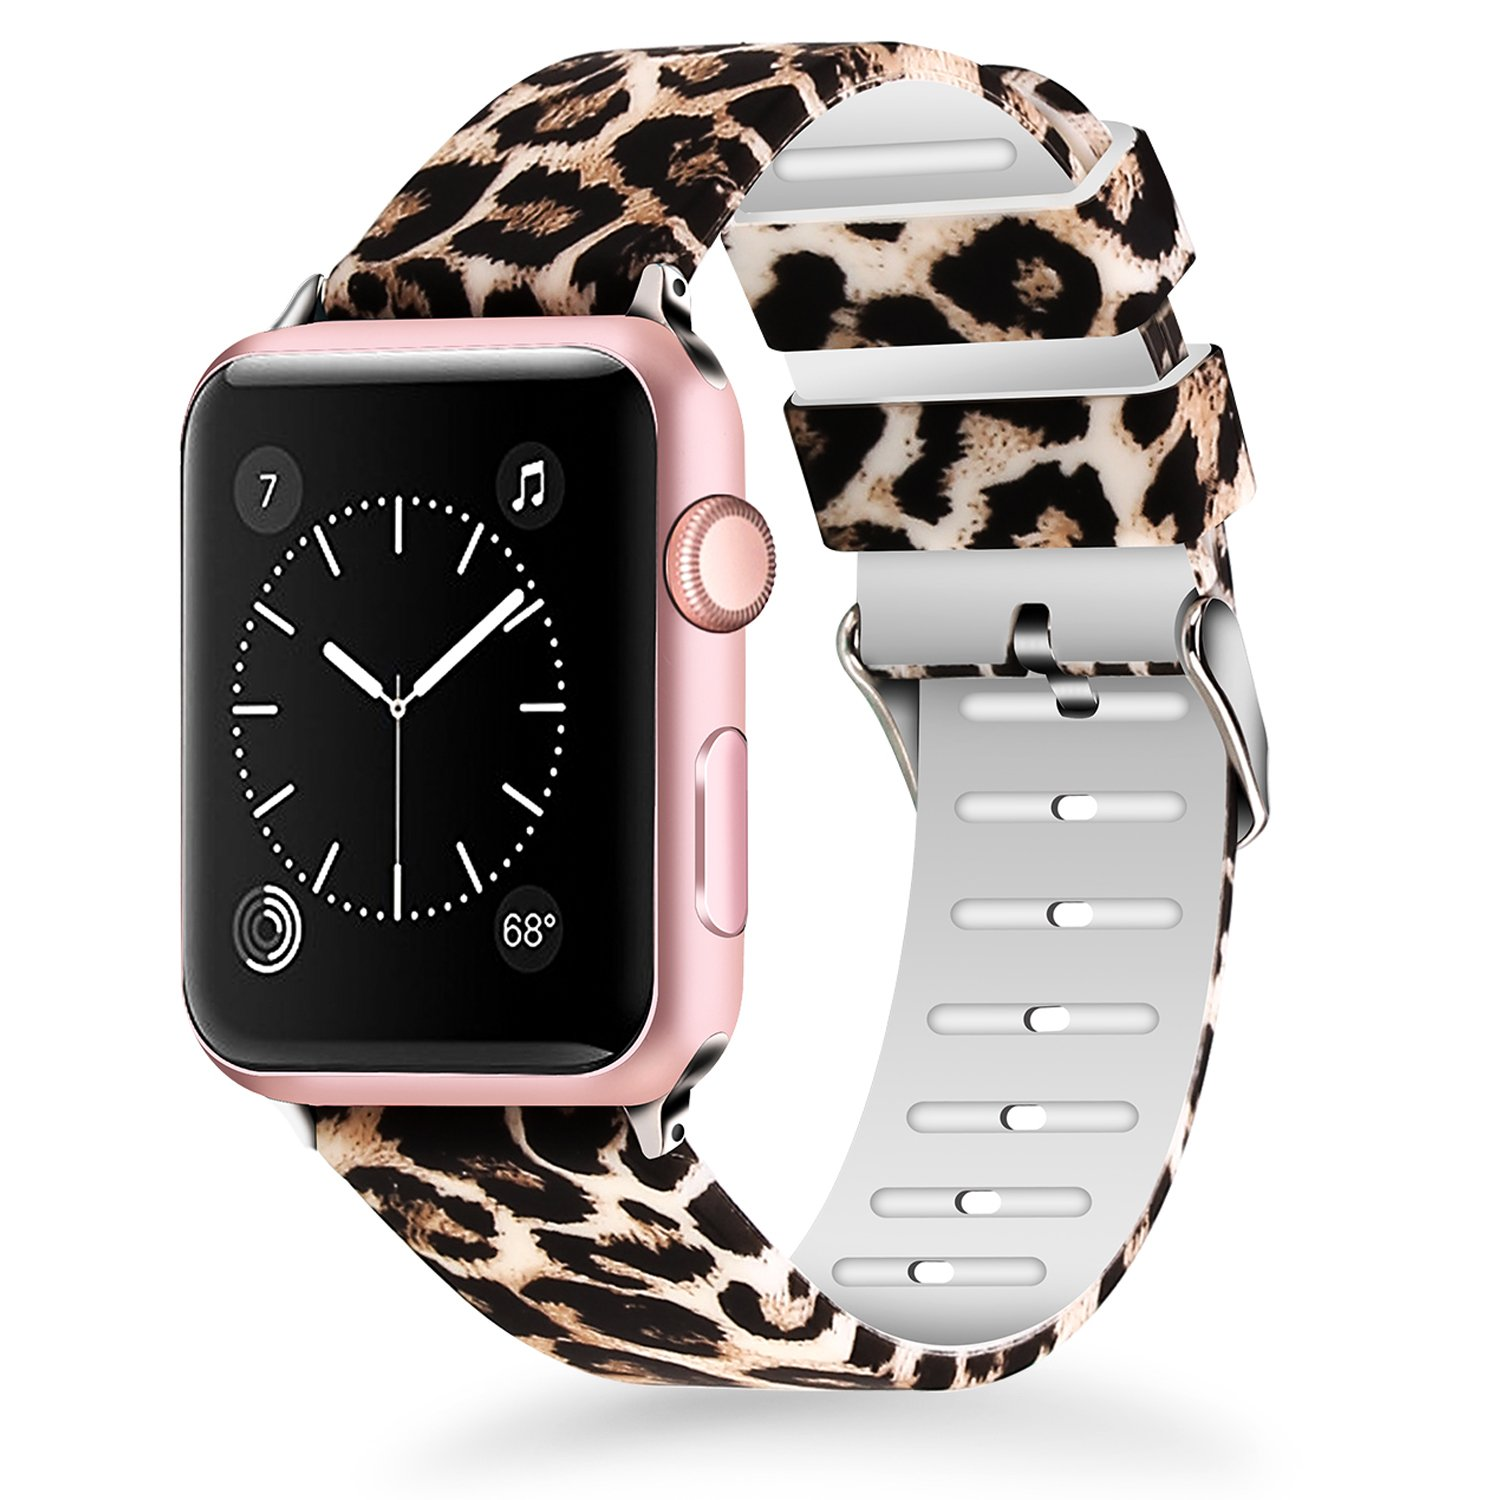 Lwsengme Compatible with Apple Watch Band 38mm 40mm 42mm 44mm, Soft Silicone Replacment Sport Bands Compatible with iWatch Series 3 Series 2 Series 1 (Leopard Print -6, 38MM/40MM) by Lwsengme